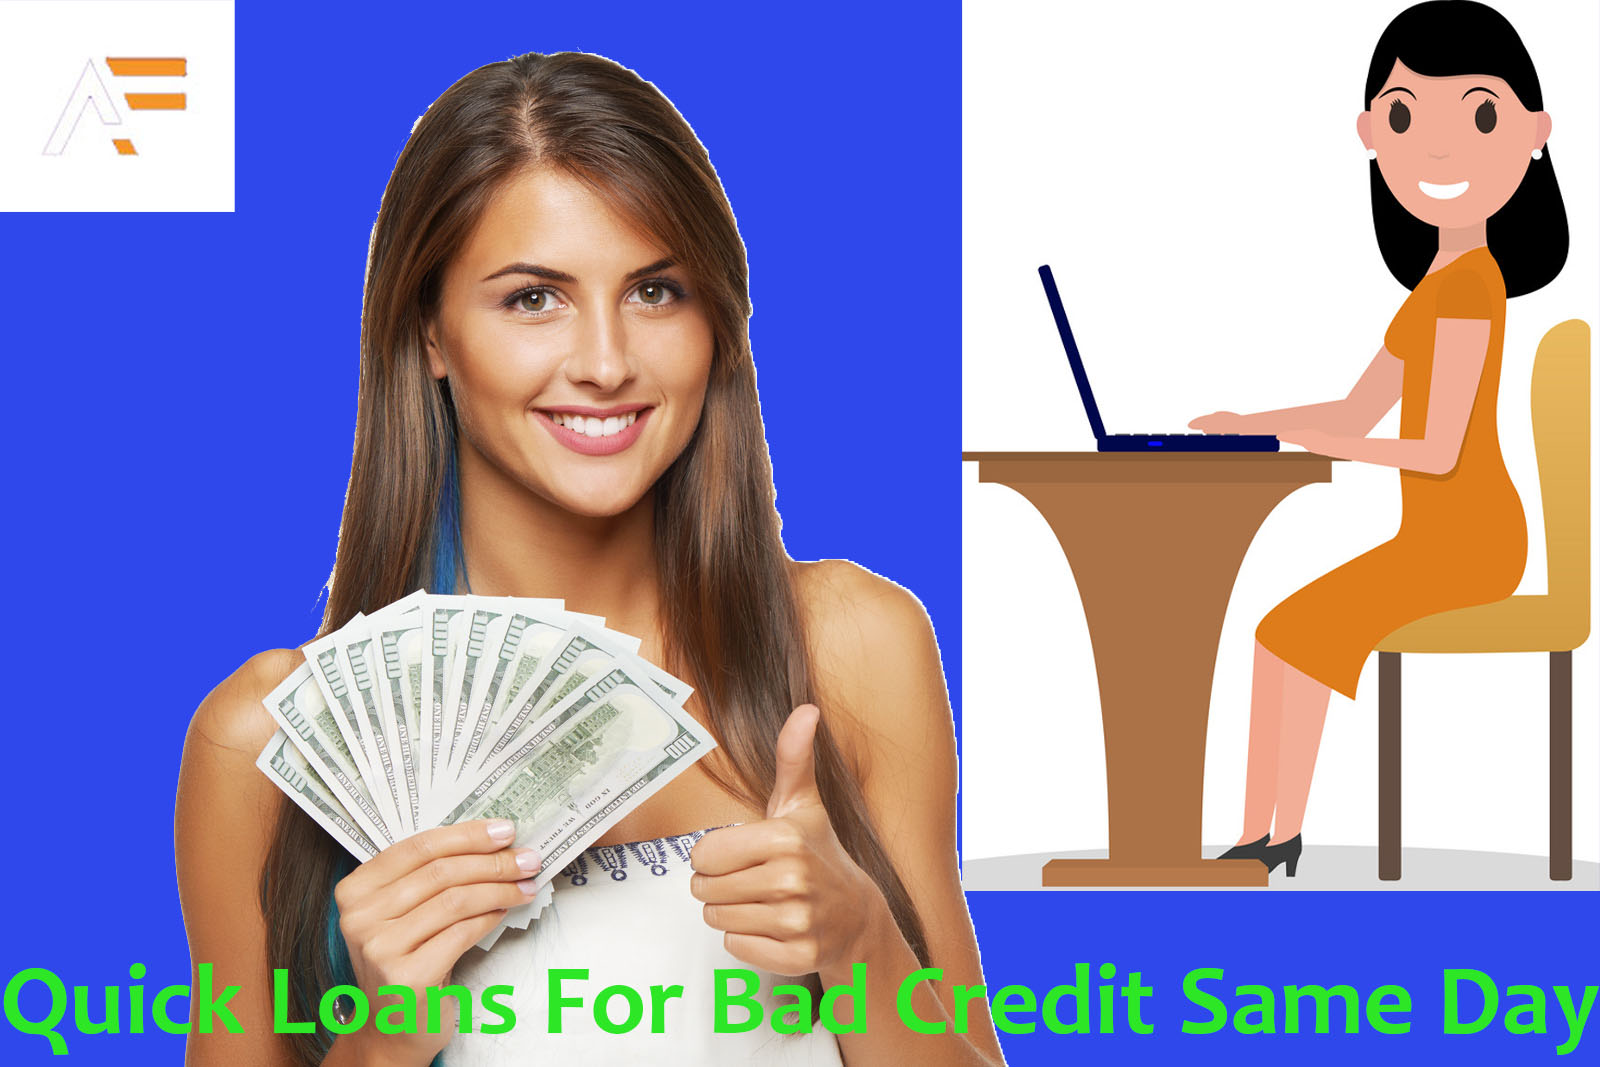 Low Credit Loans >> Quick Loans For Bad Credit Same Day Loans For Bad Credit